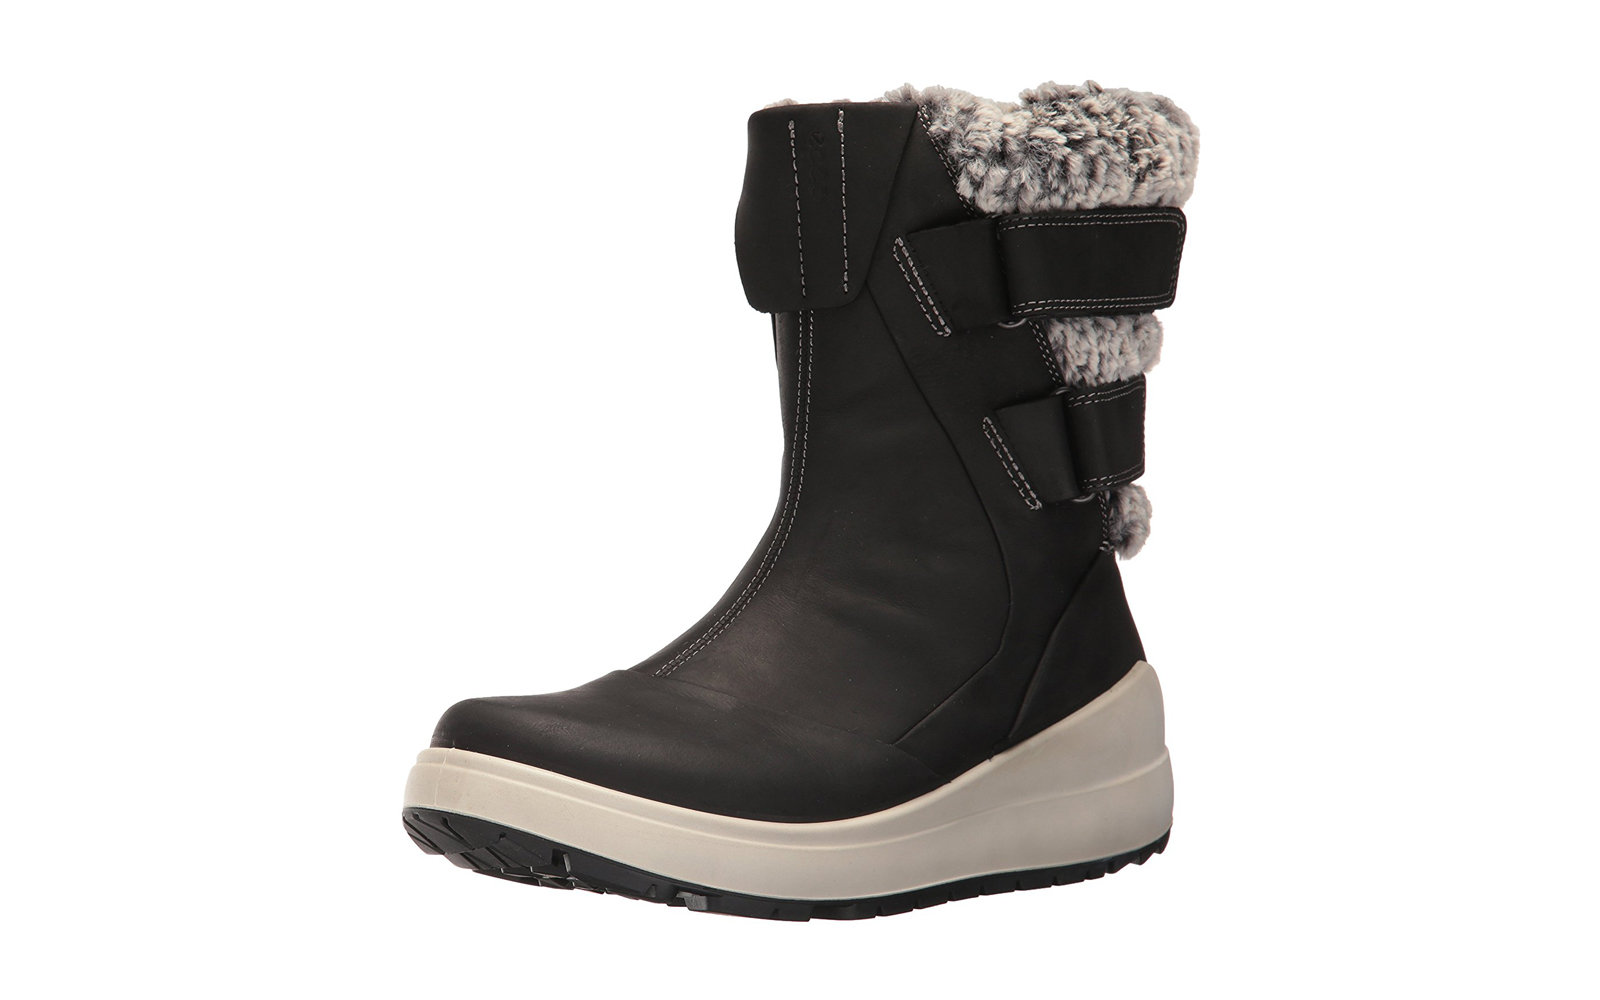 75751104e7e2d9 The 9 Best Cold Weather Boots for Every Type of Trip